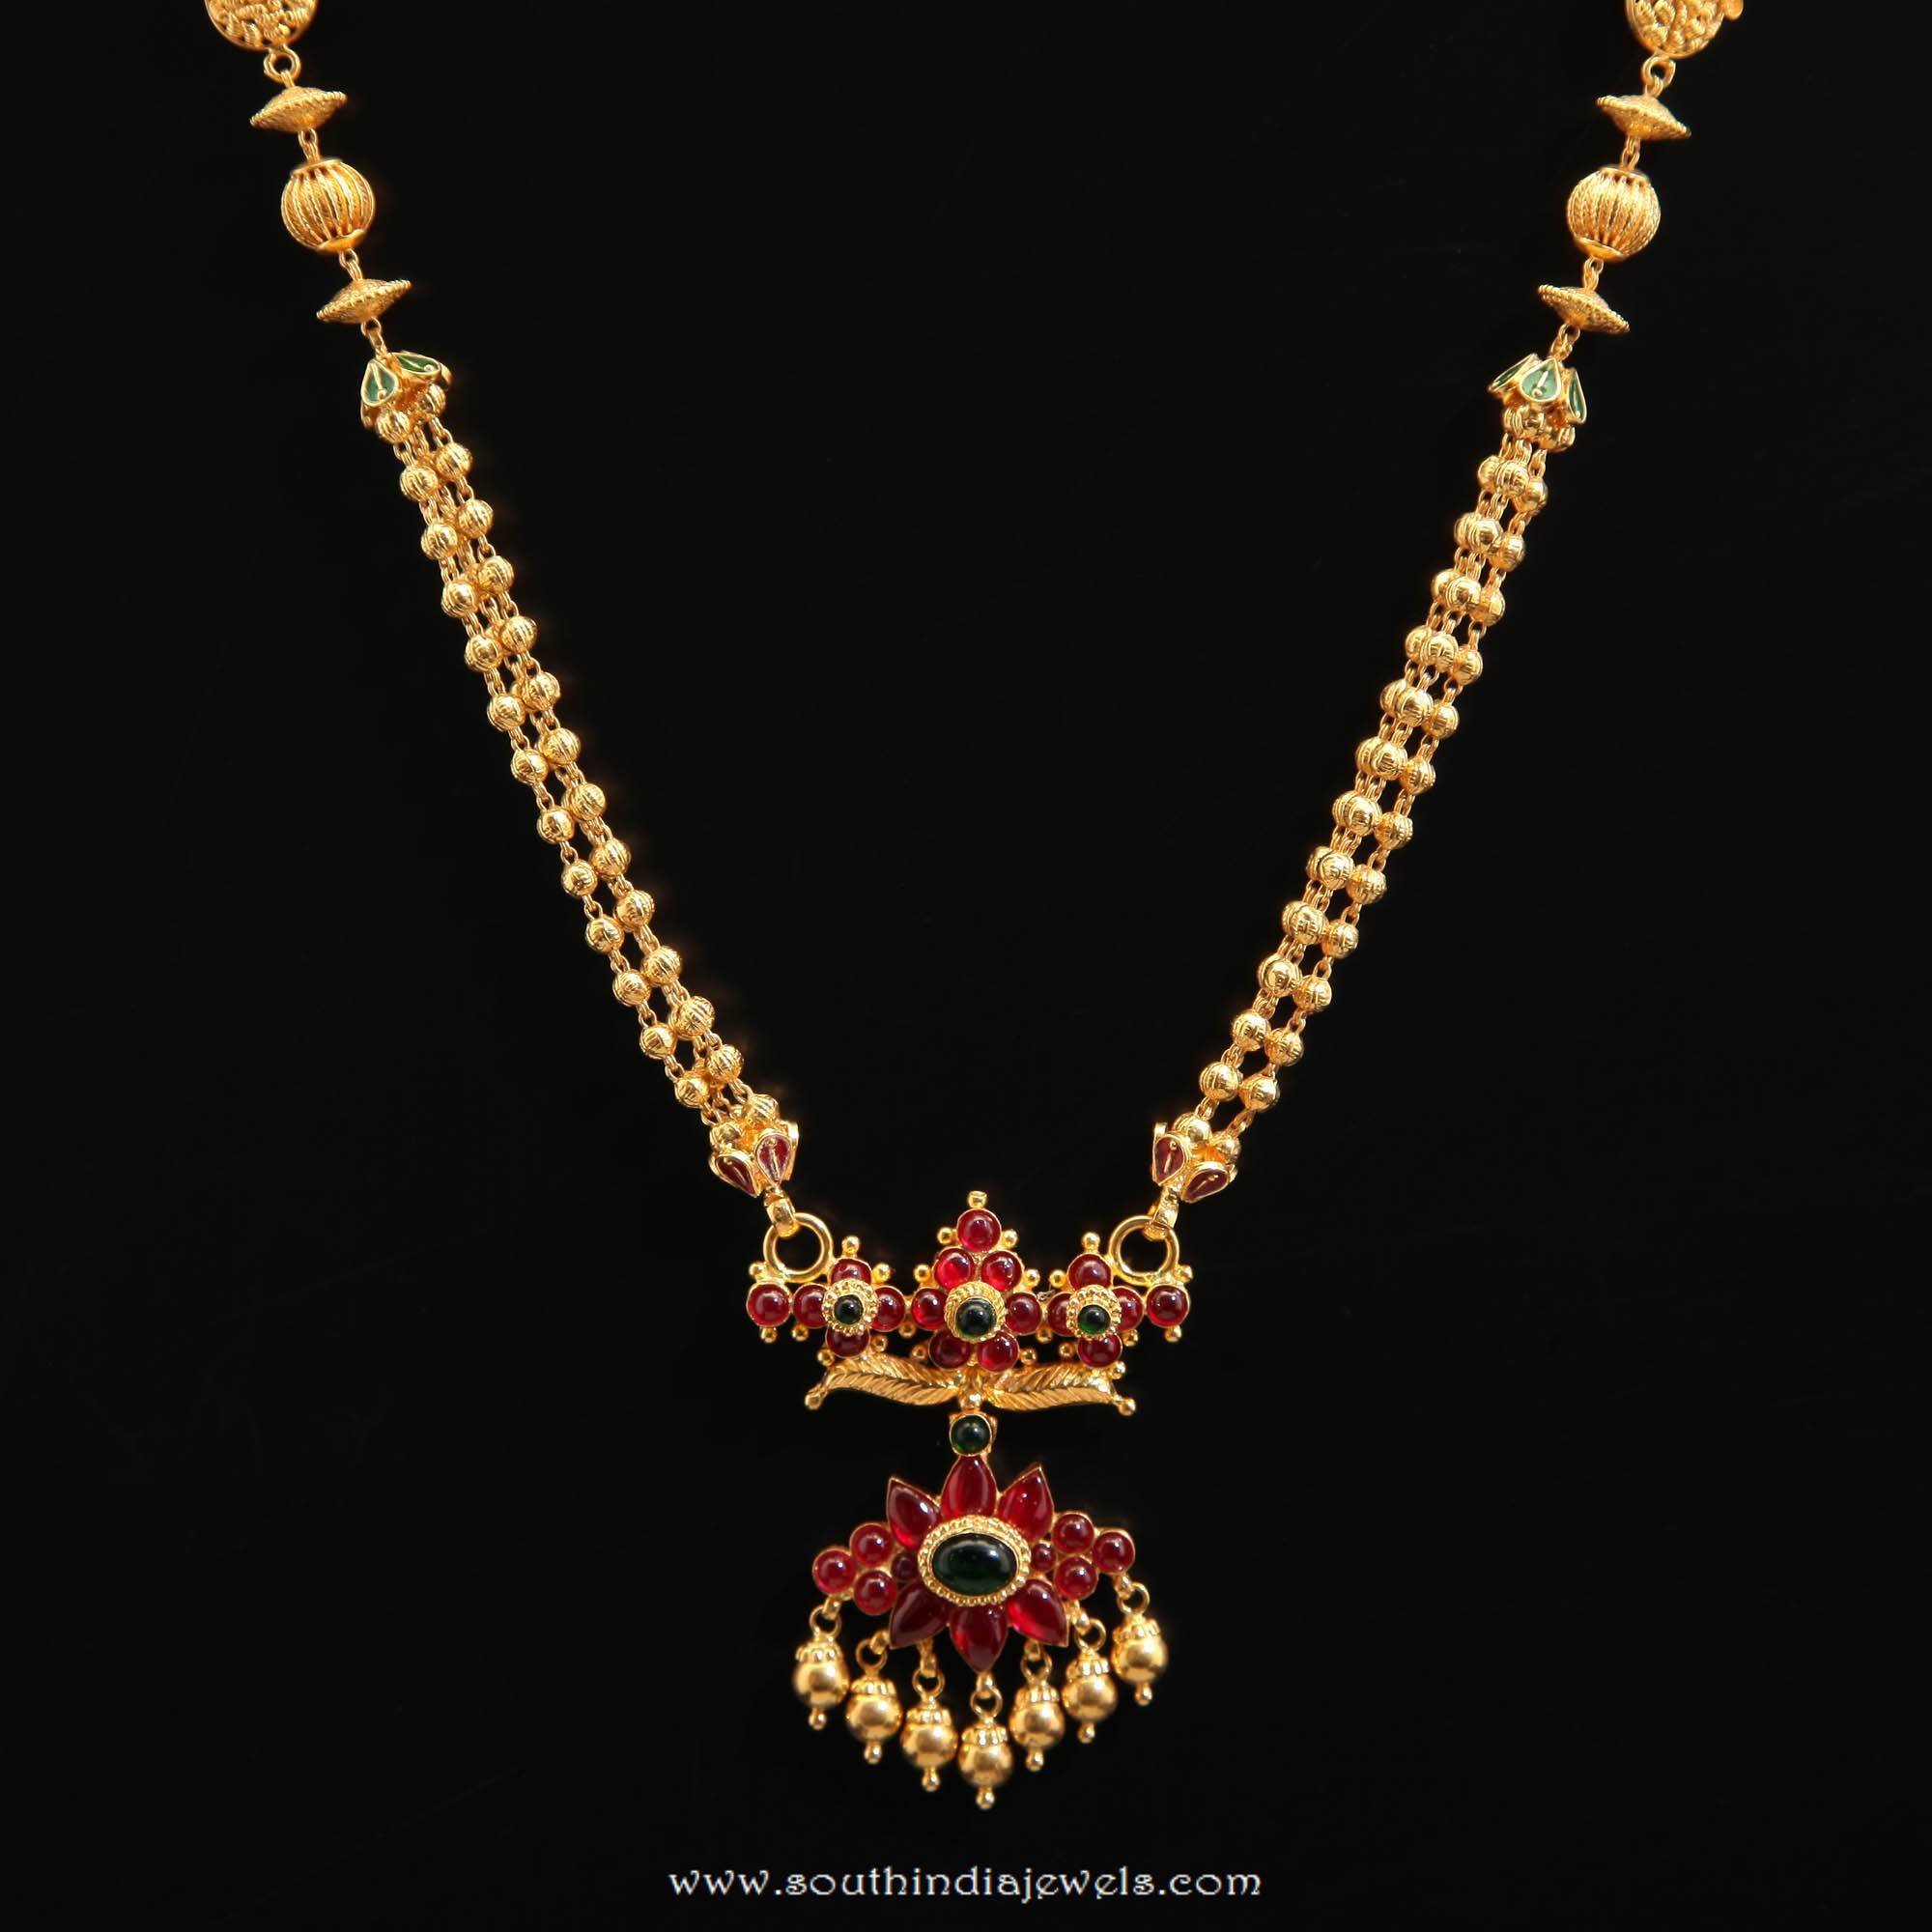 gold necklace from d a r jewellers south india jewels